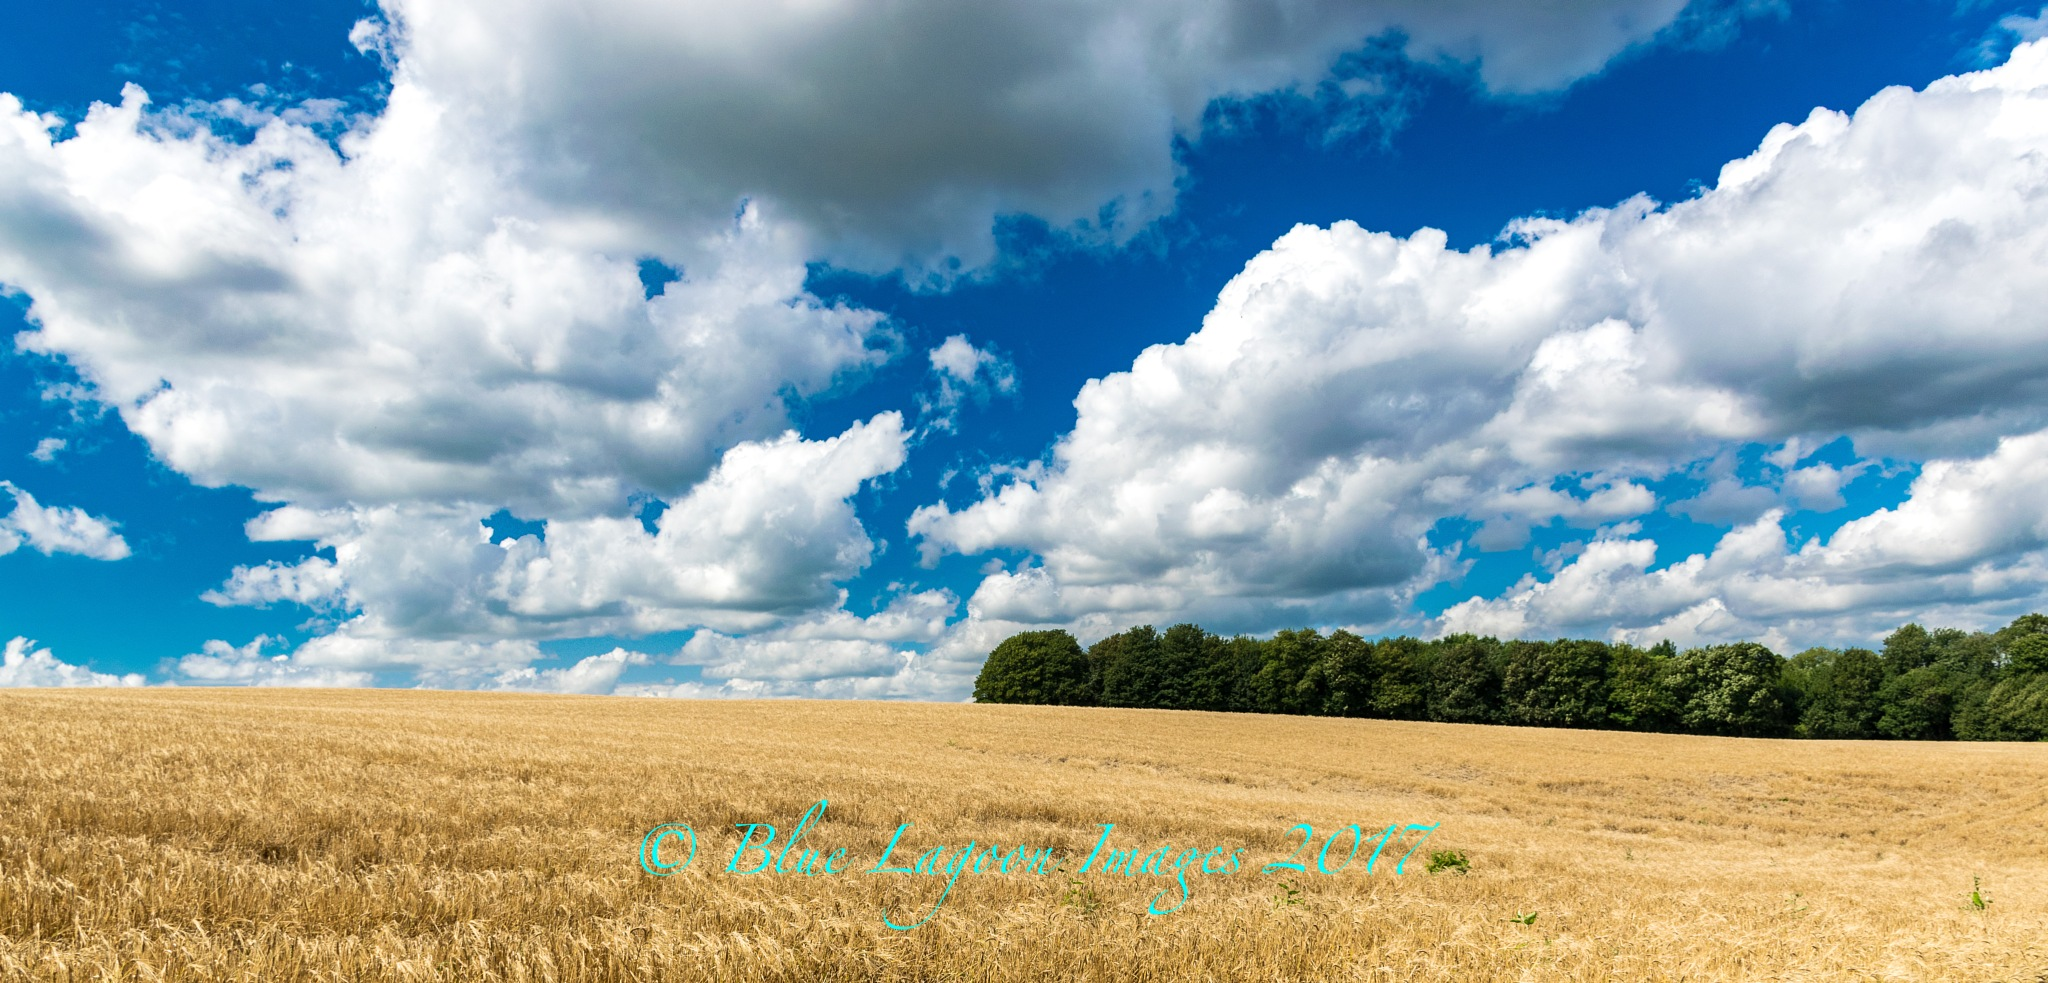 The Countryside by Blue Lagoon Images